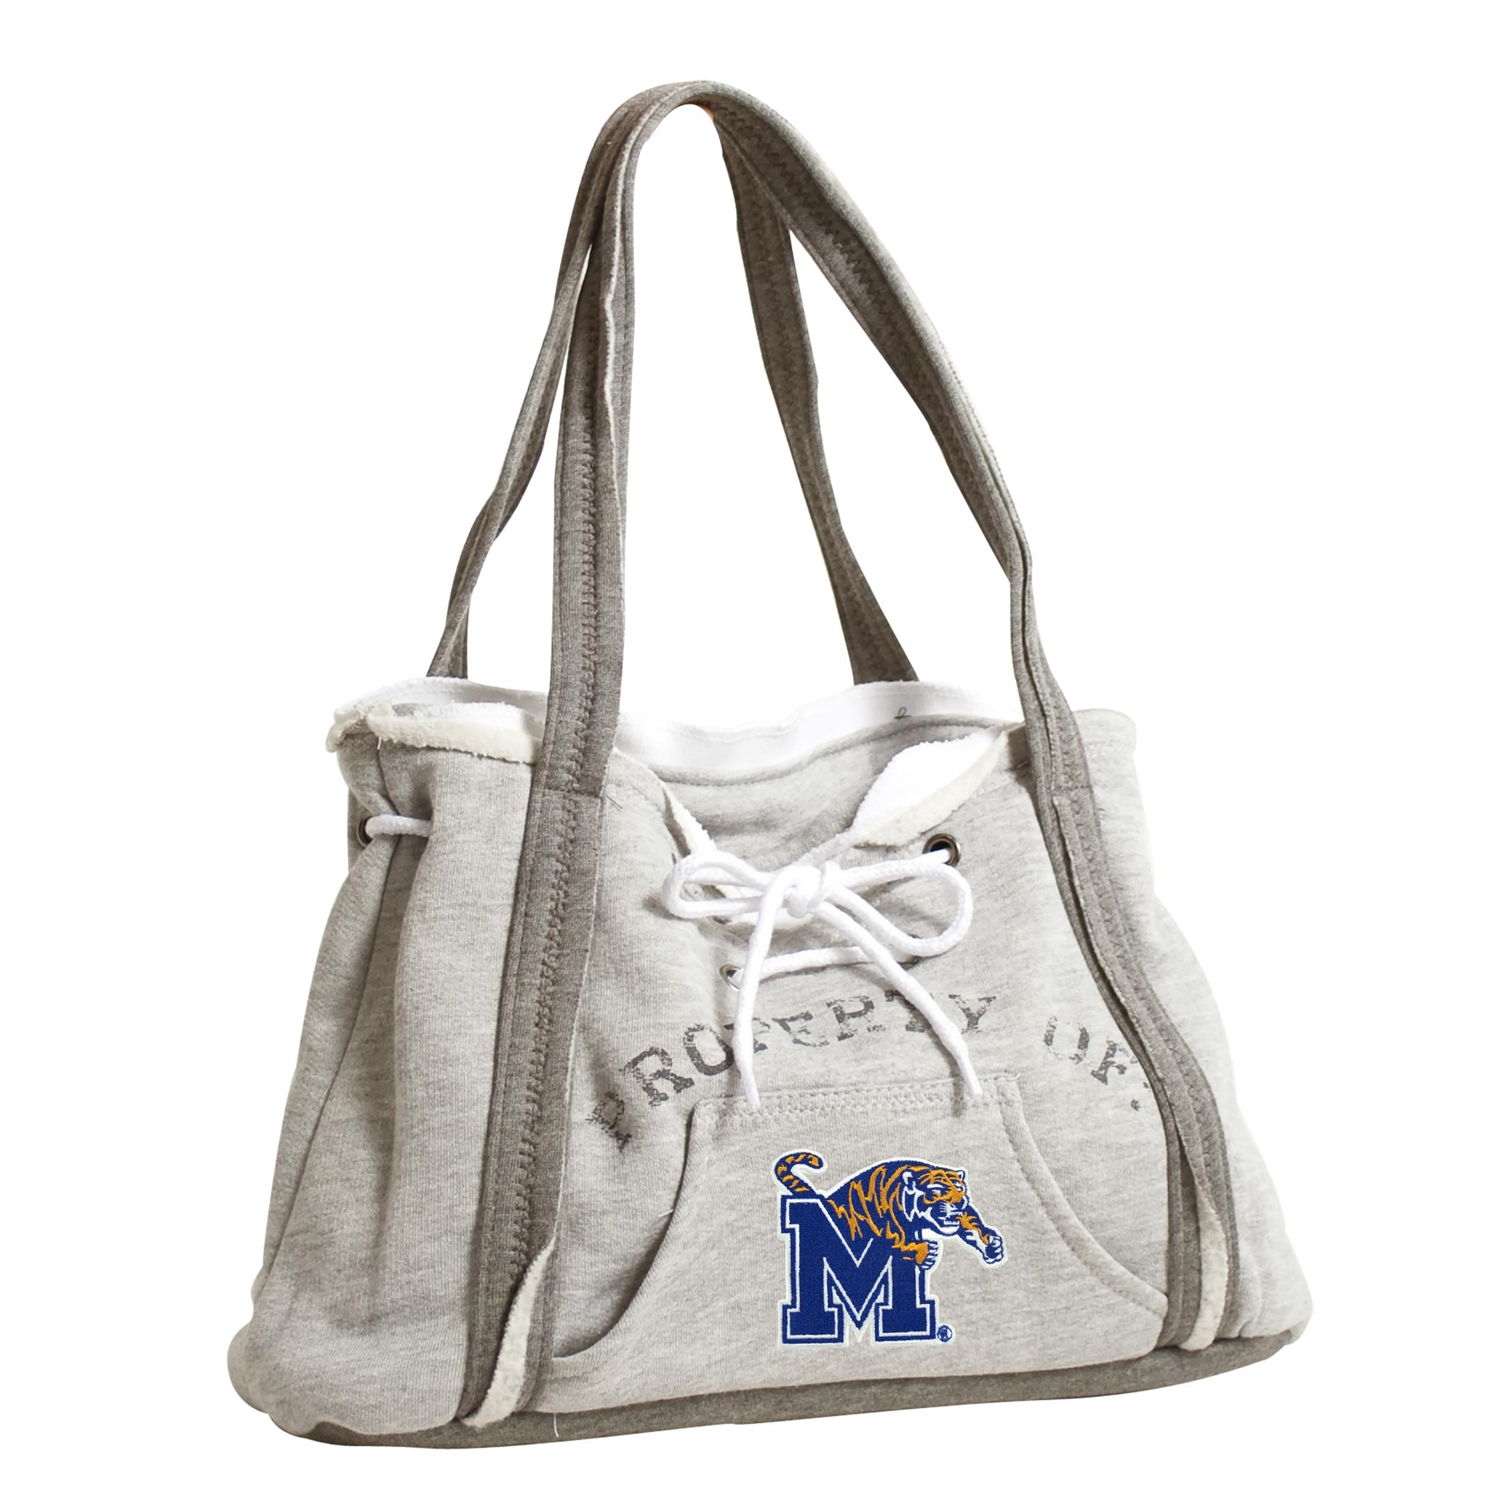 Ncaa College Memphis Mem Tigers Purses Wristlets Totes - 150404-umem-grey - Memphis; U Of Hoodie Purse 150404-UMEM-GREY